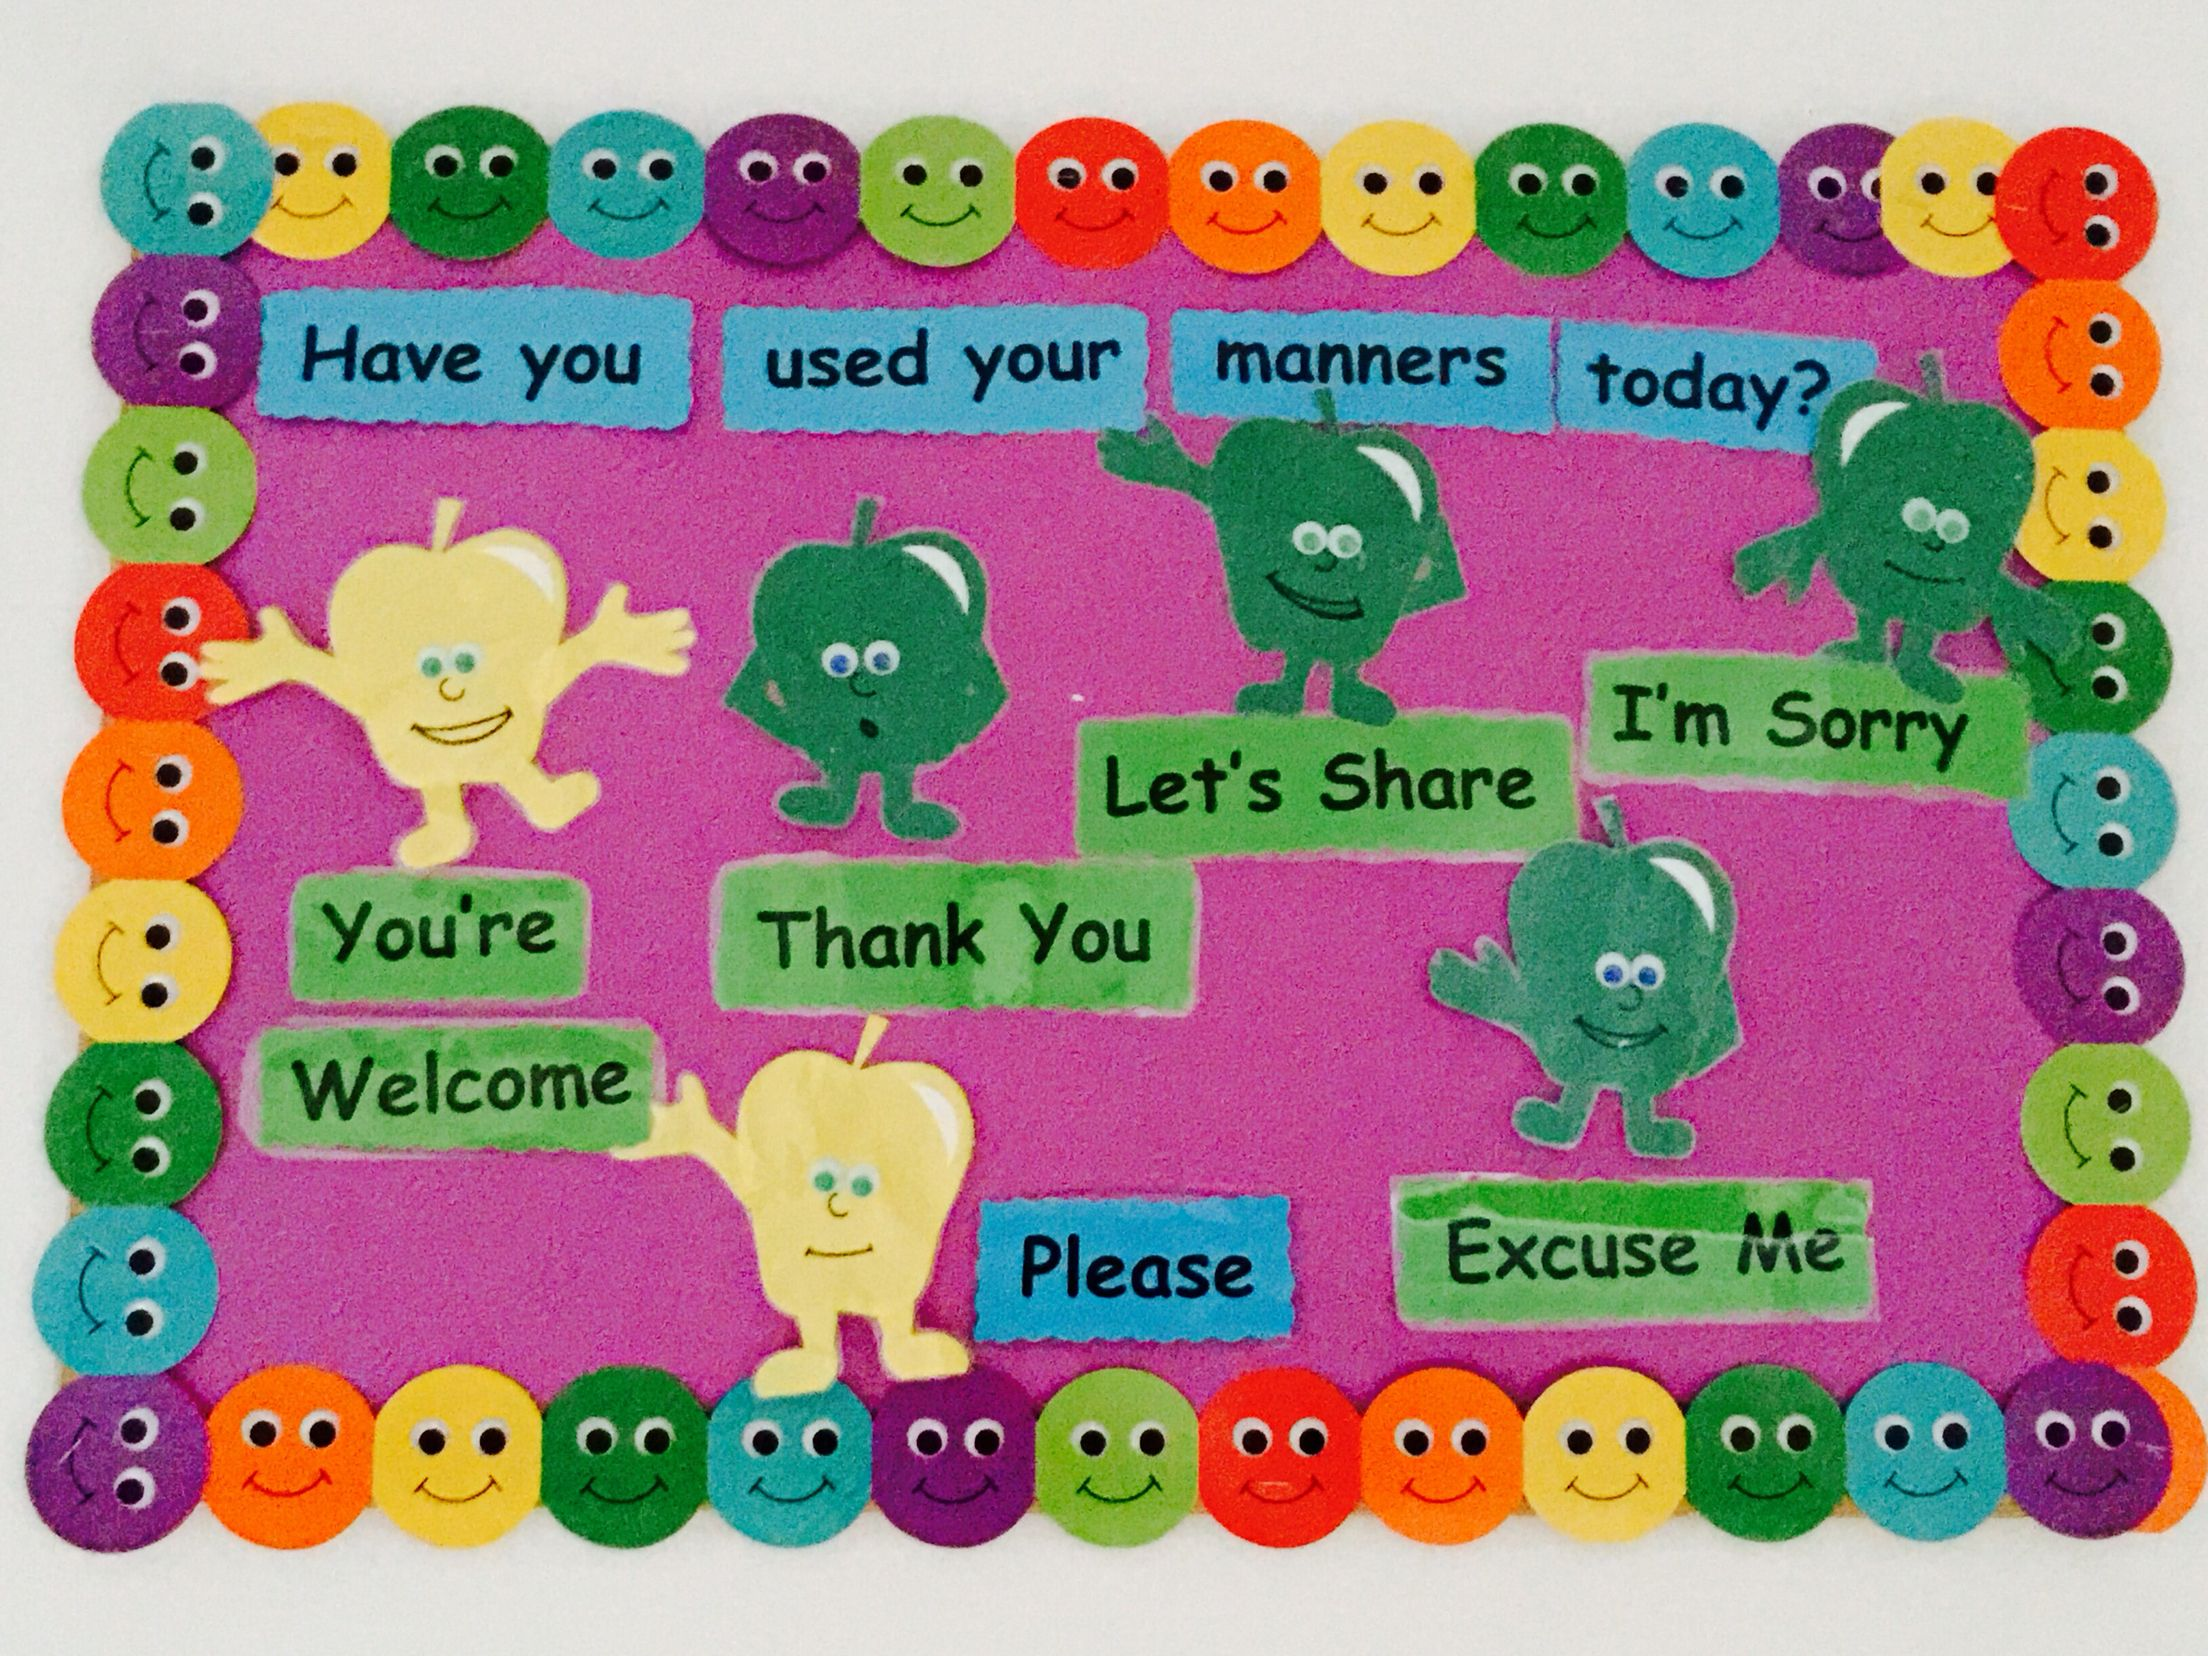 Have You Used Your Manners Today You Re Welcome Thank